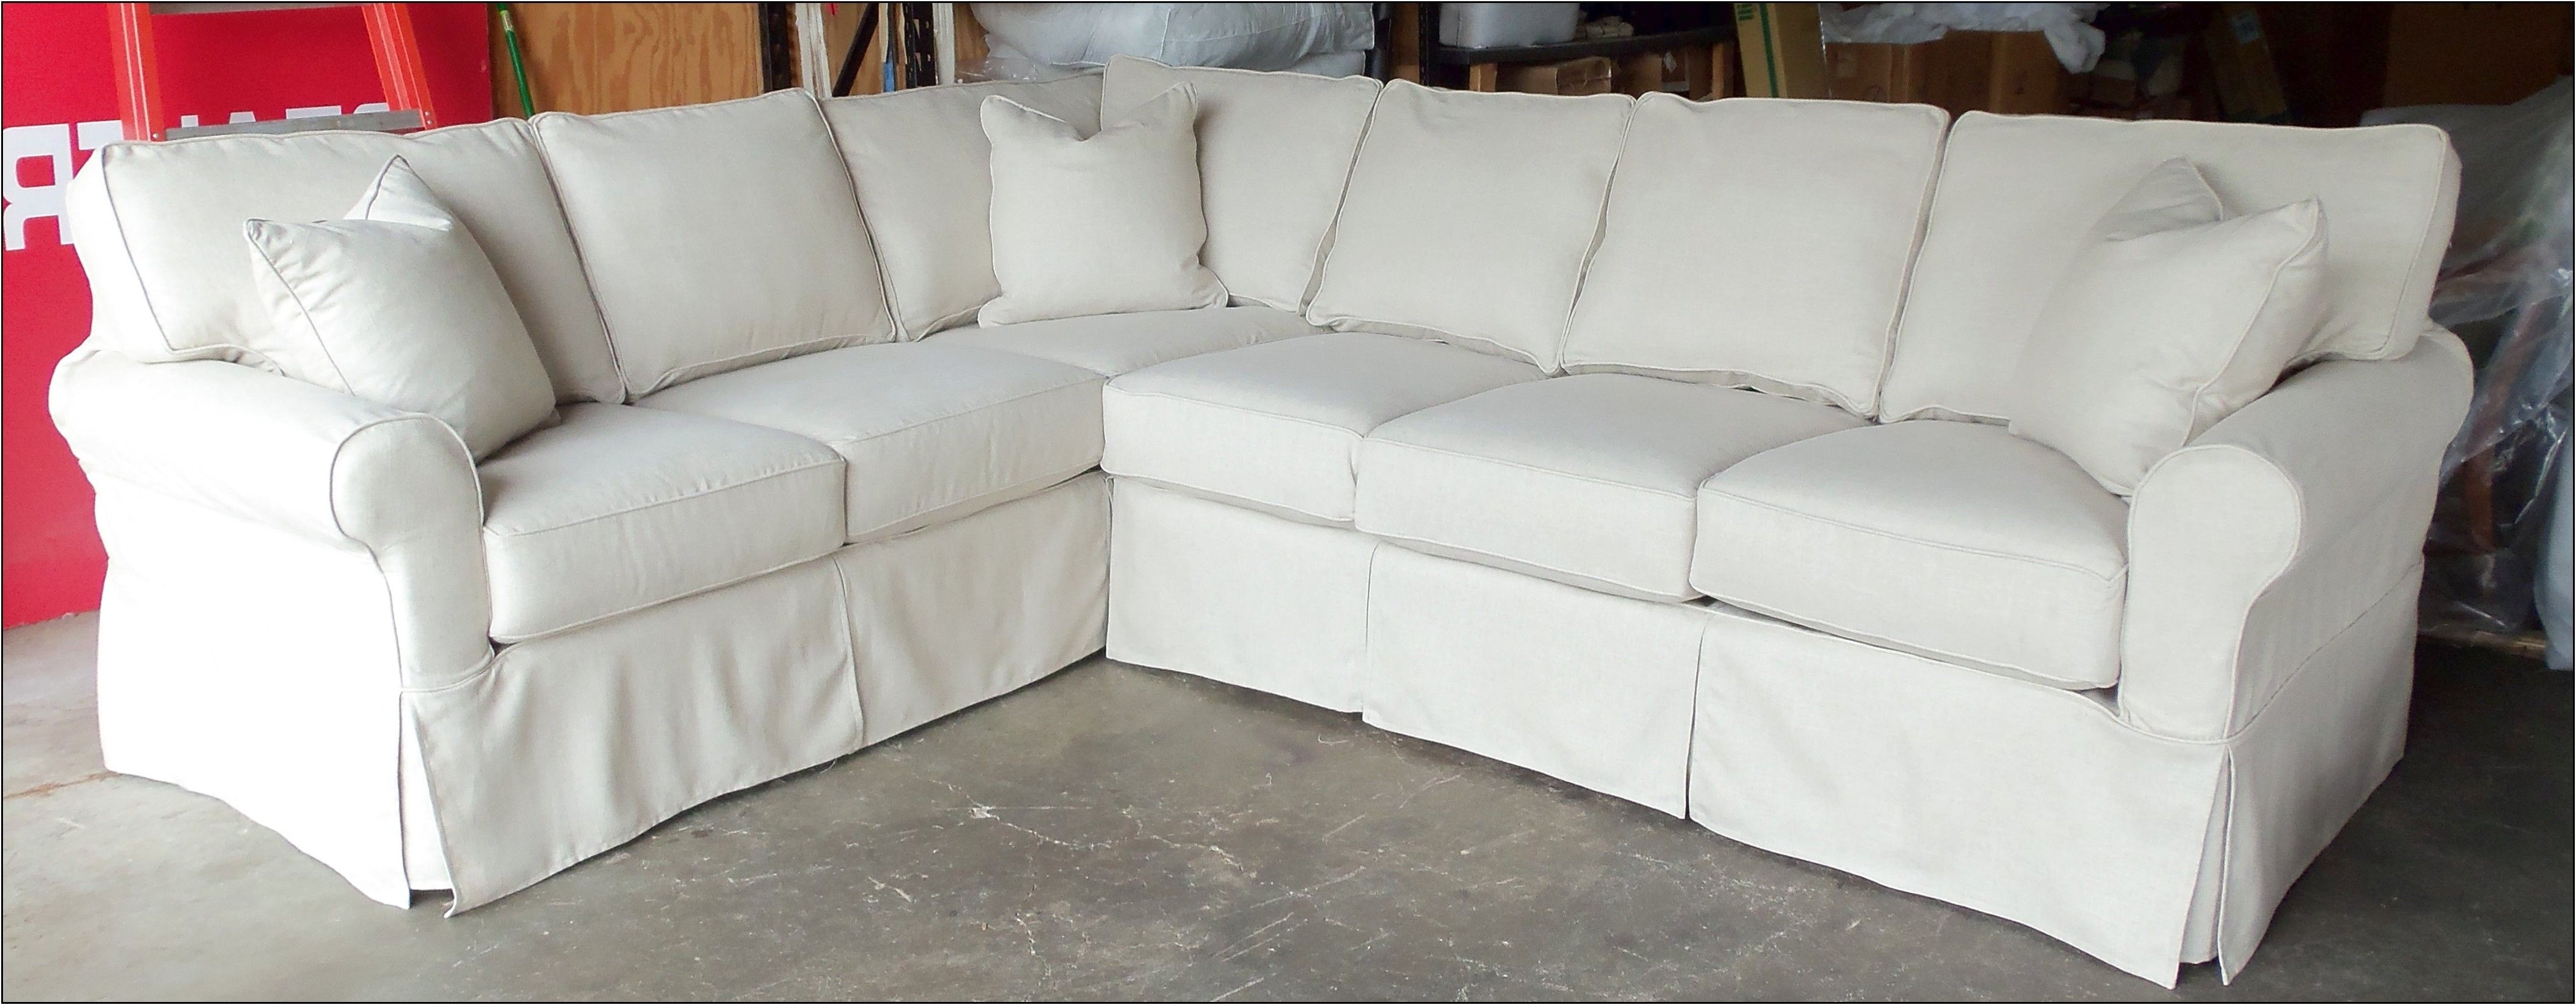 Slipcovers For Sectional Sofa With Chaise With Well Liked Cool Sectional Couch Cover , Best Sectional Couch Cover 72 For (View 7 of 15)